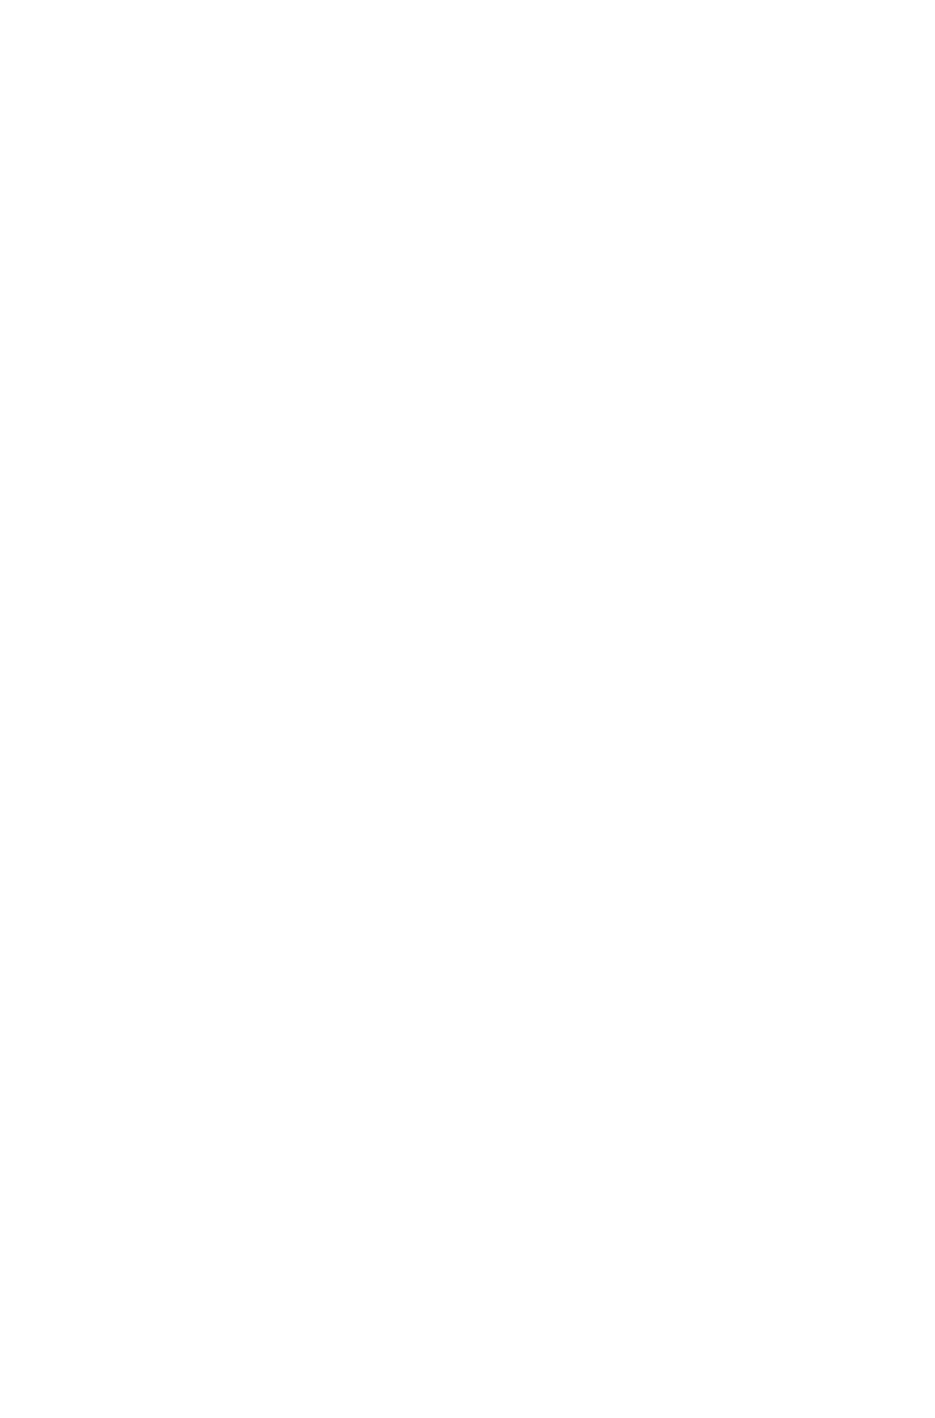 MIRADOR limited edition Cup of Excellence Gewinner Kolumbien Kaffee